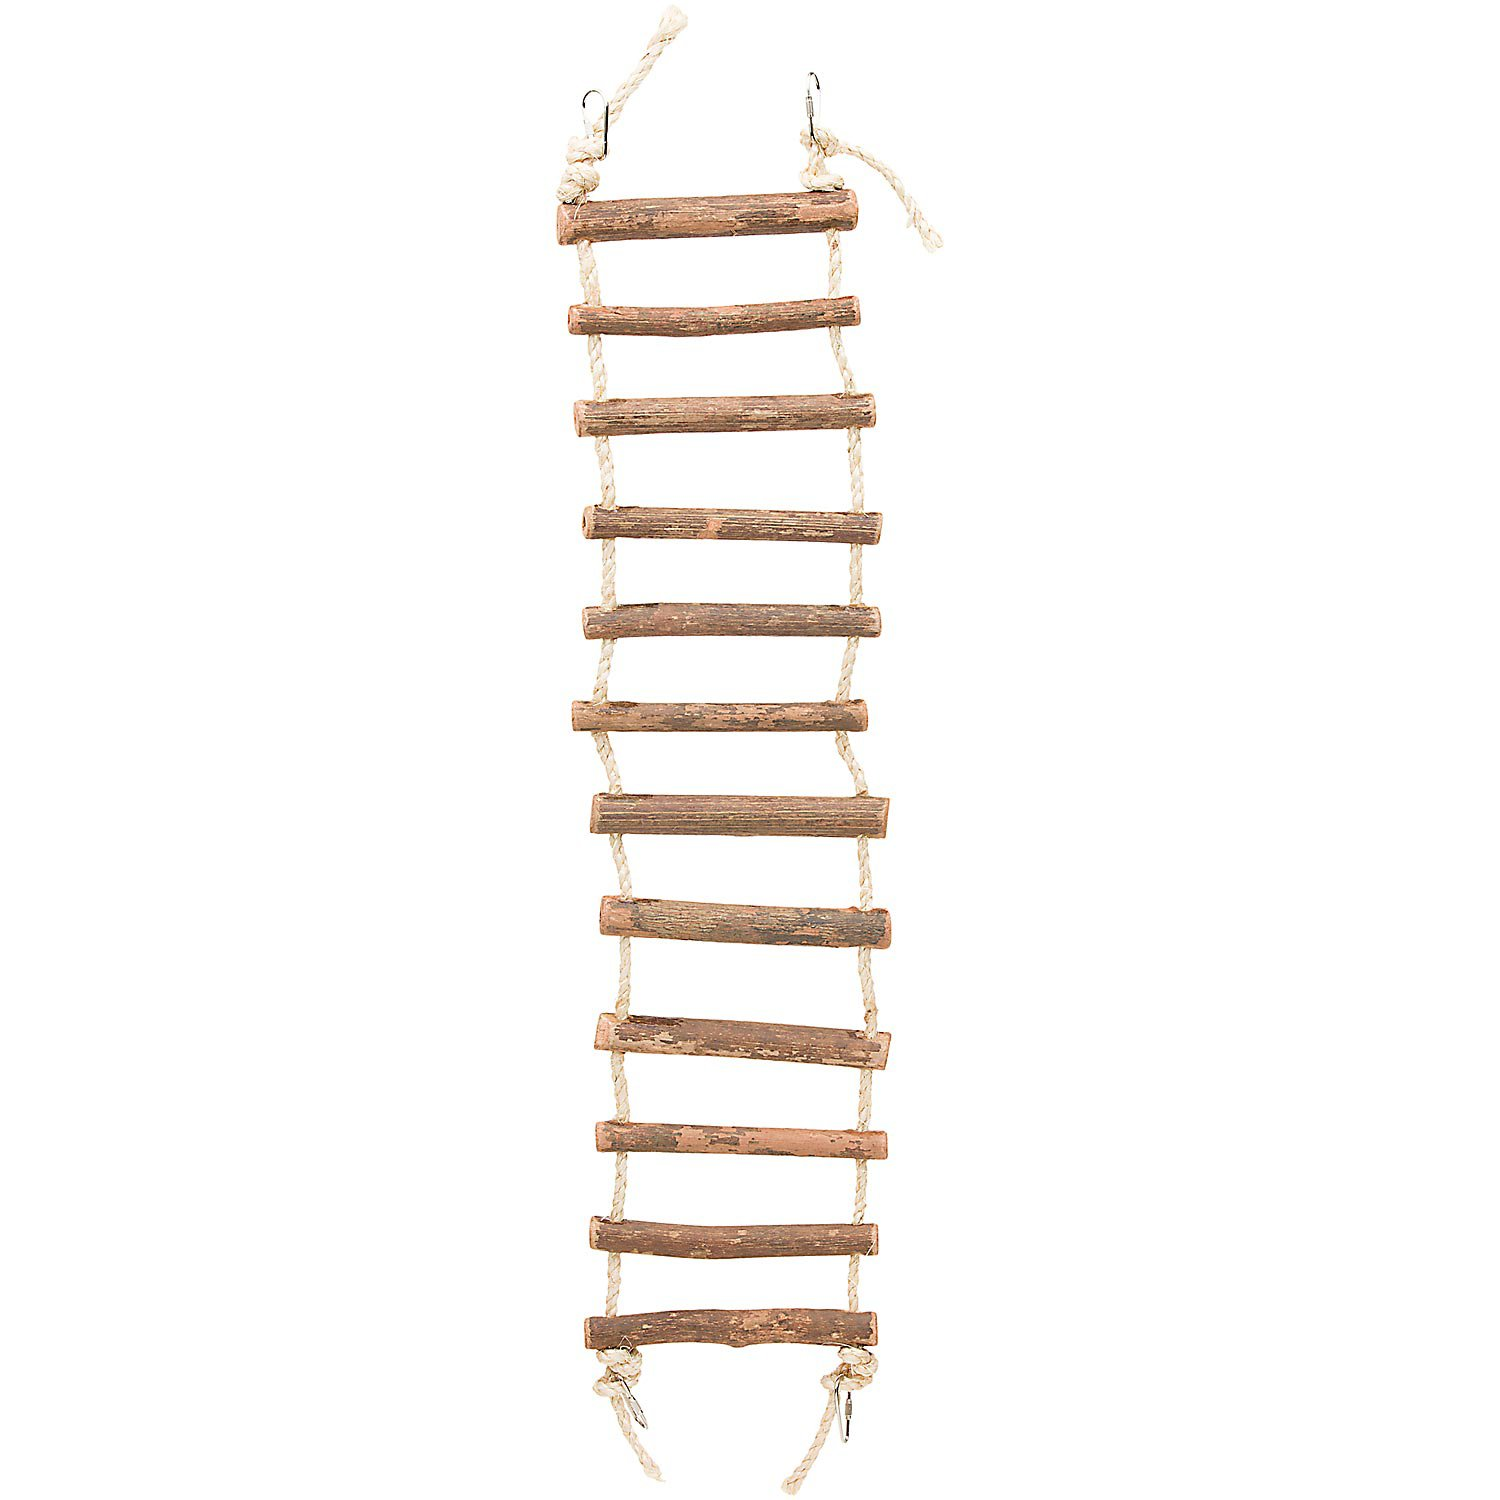 Prevue Hendryx Naturals Large Rope Ladder Bird Toy Petco